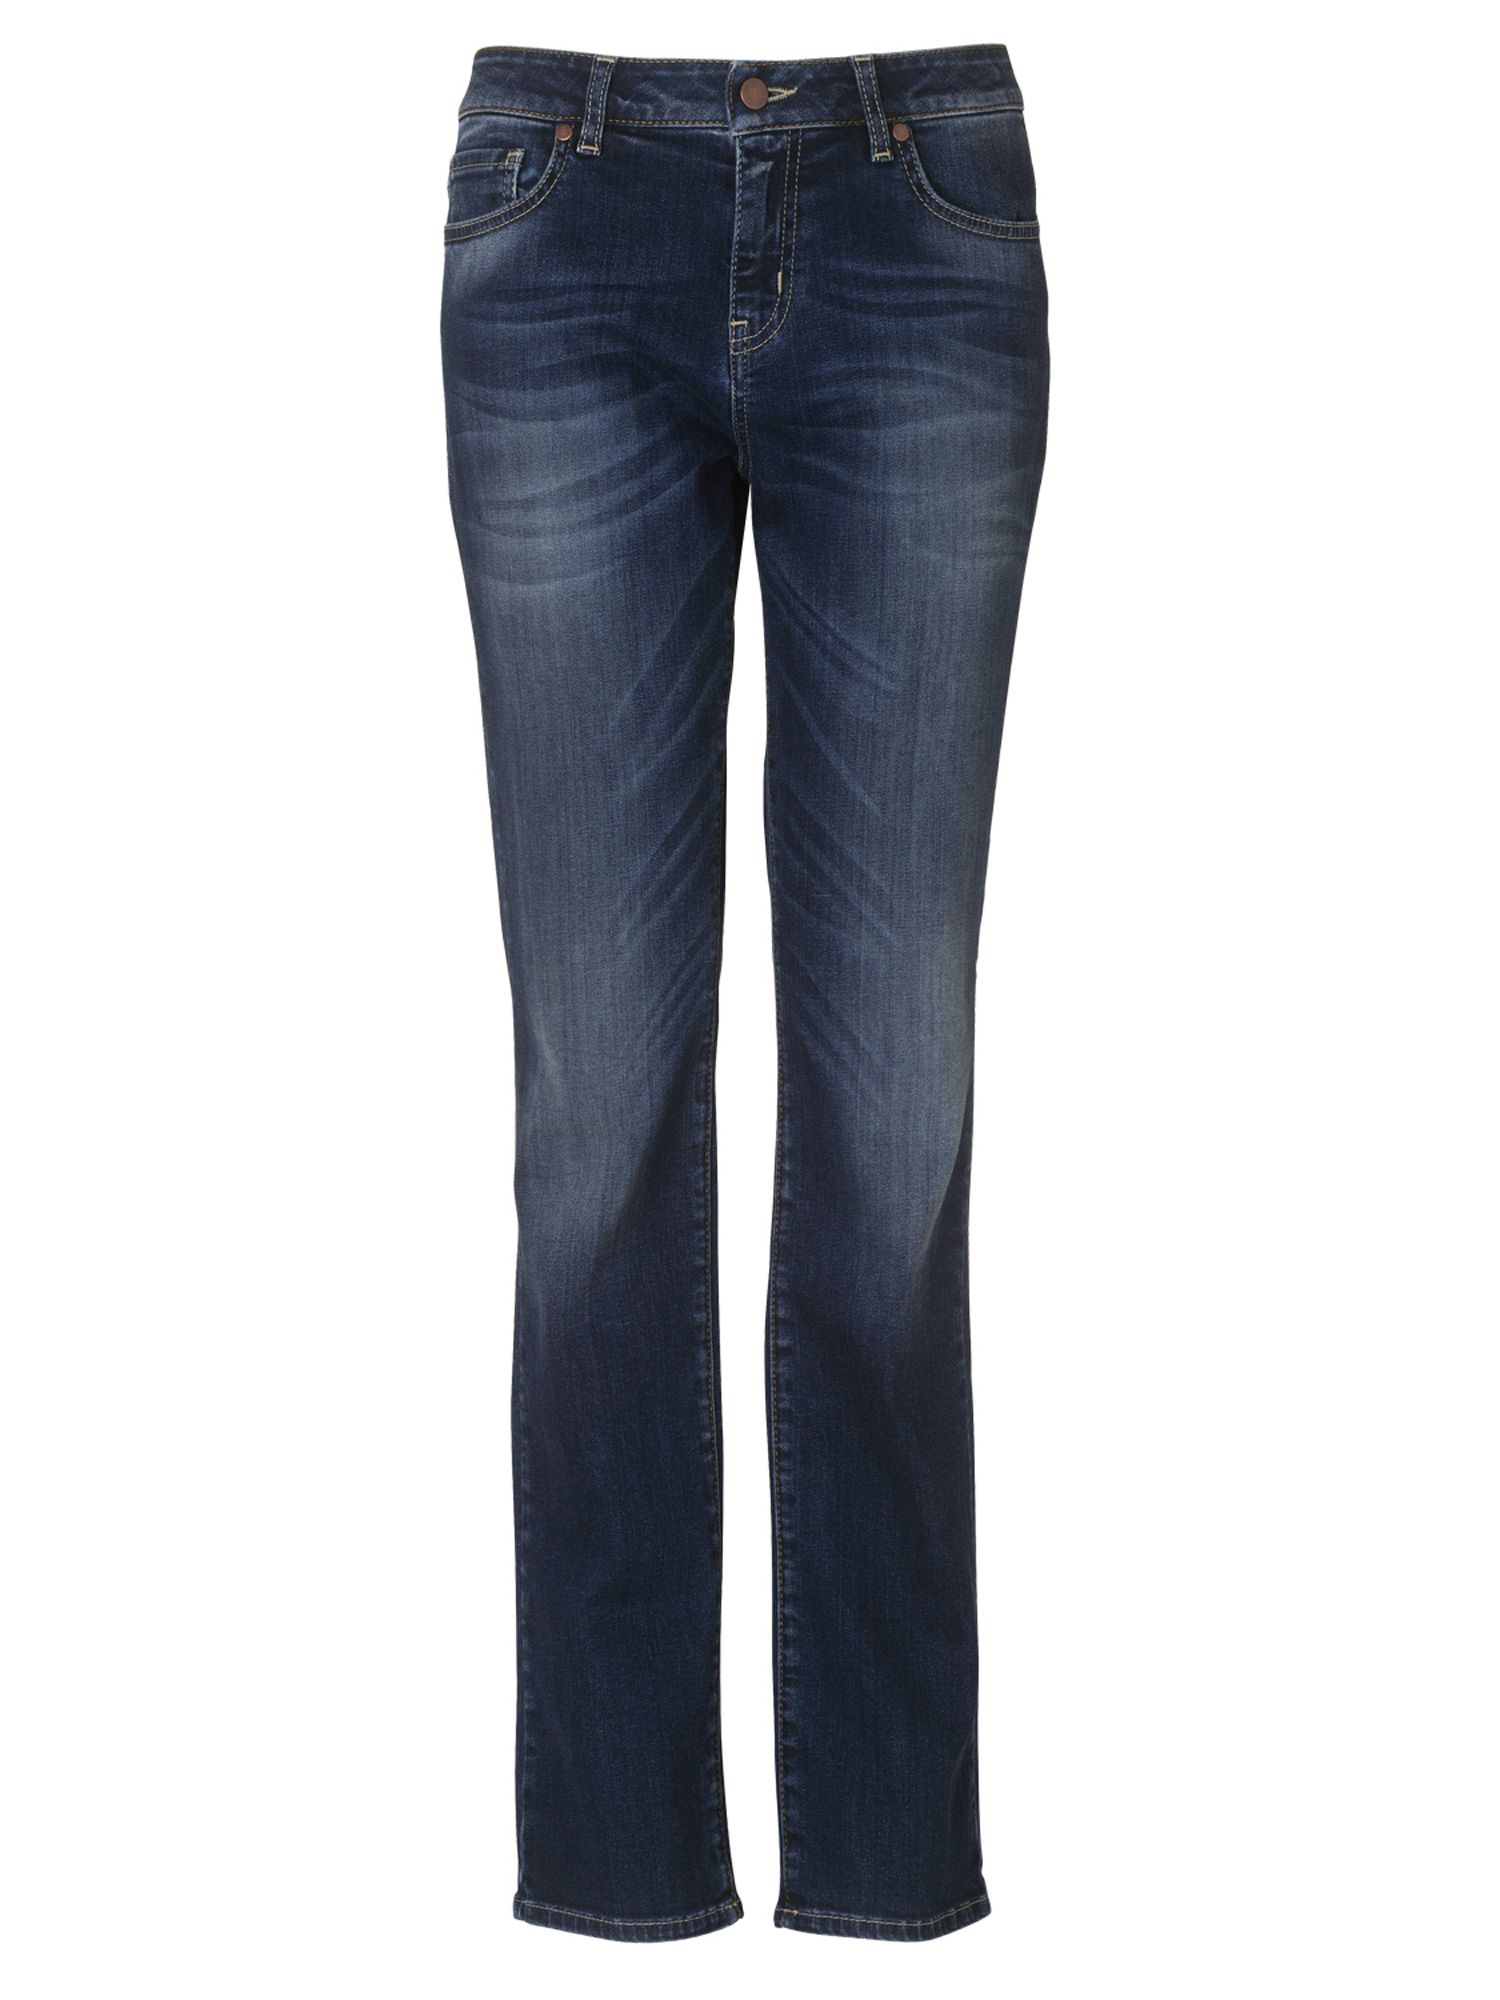 Torra washed denim jeans